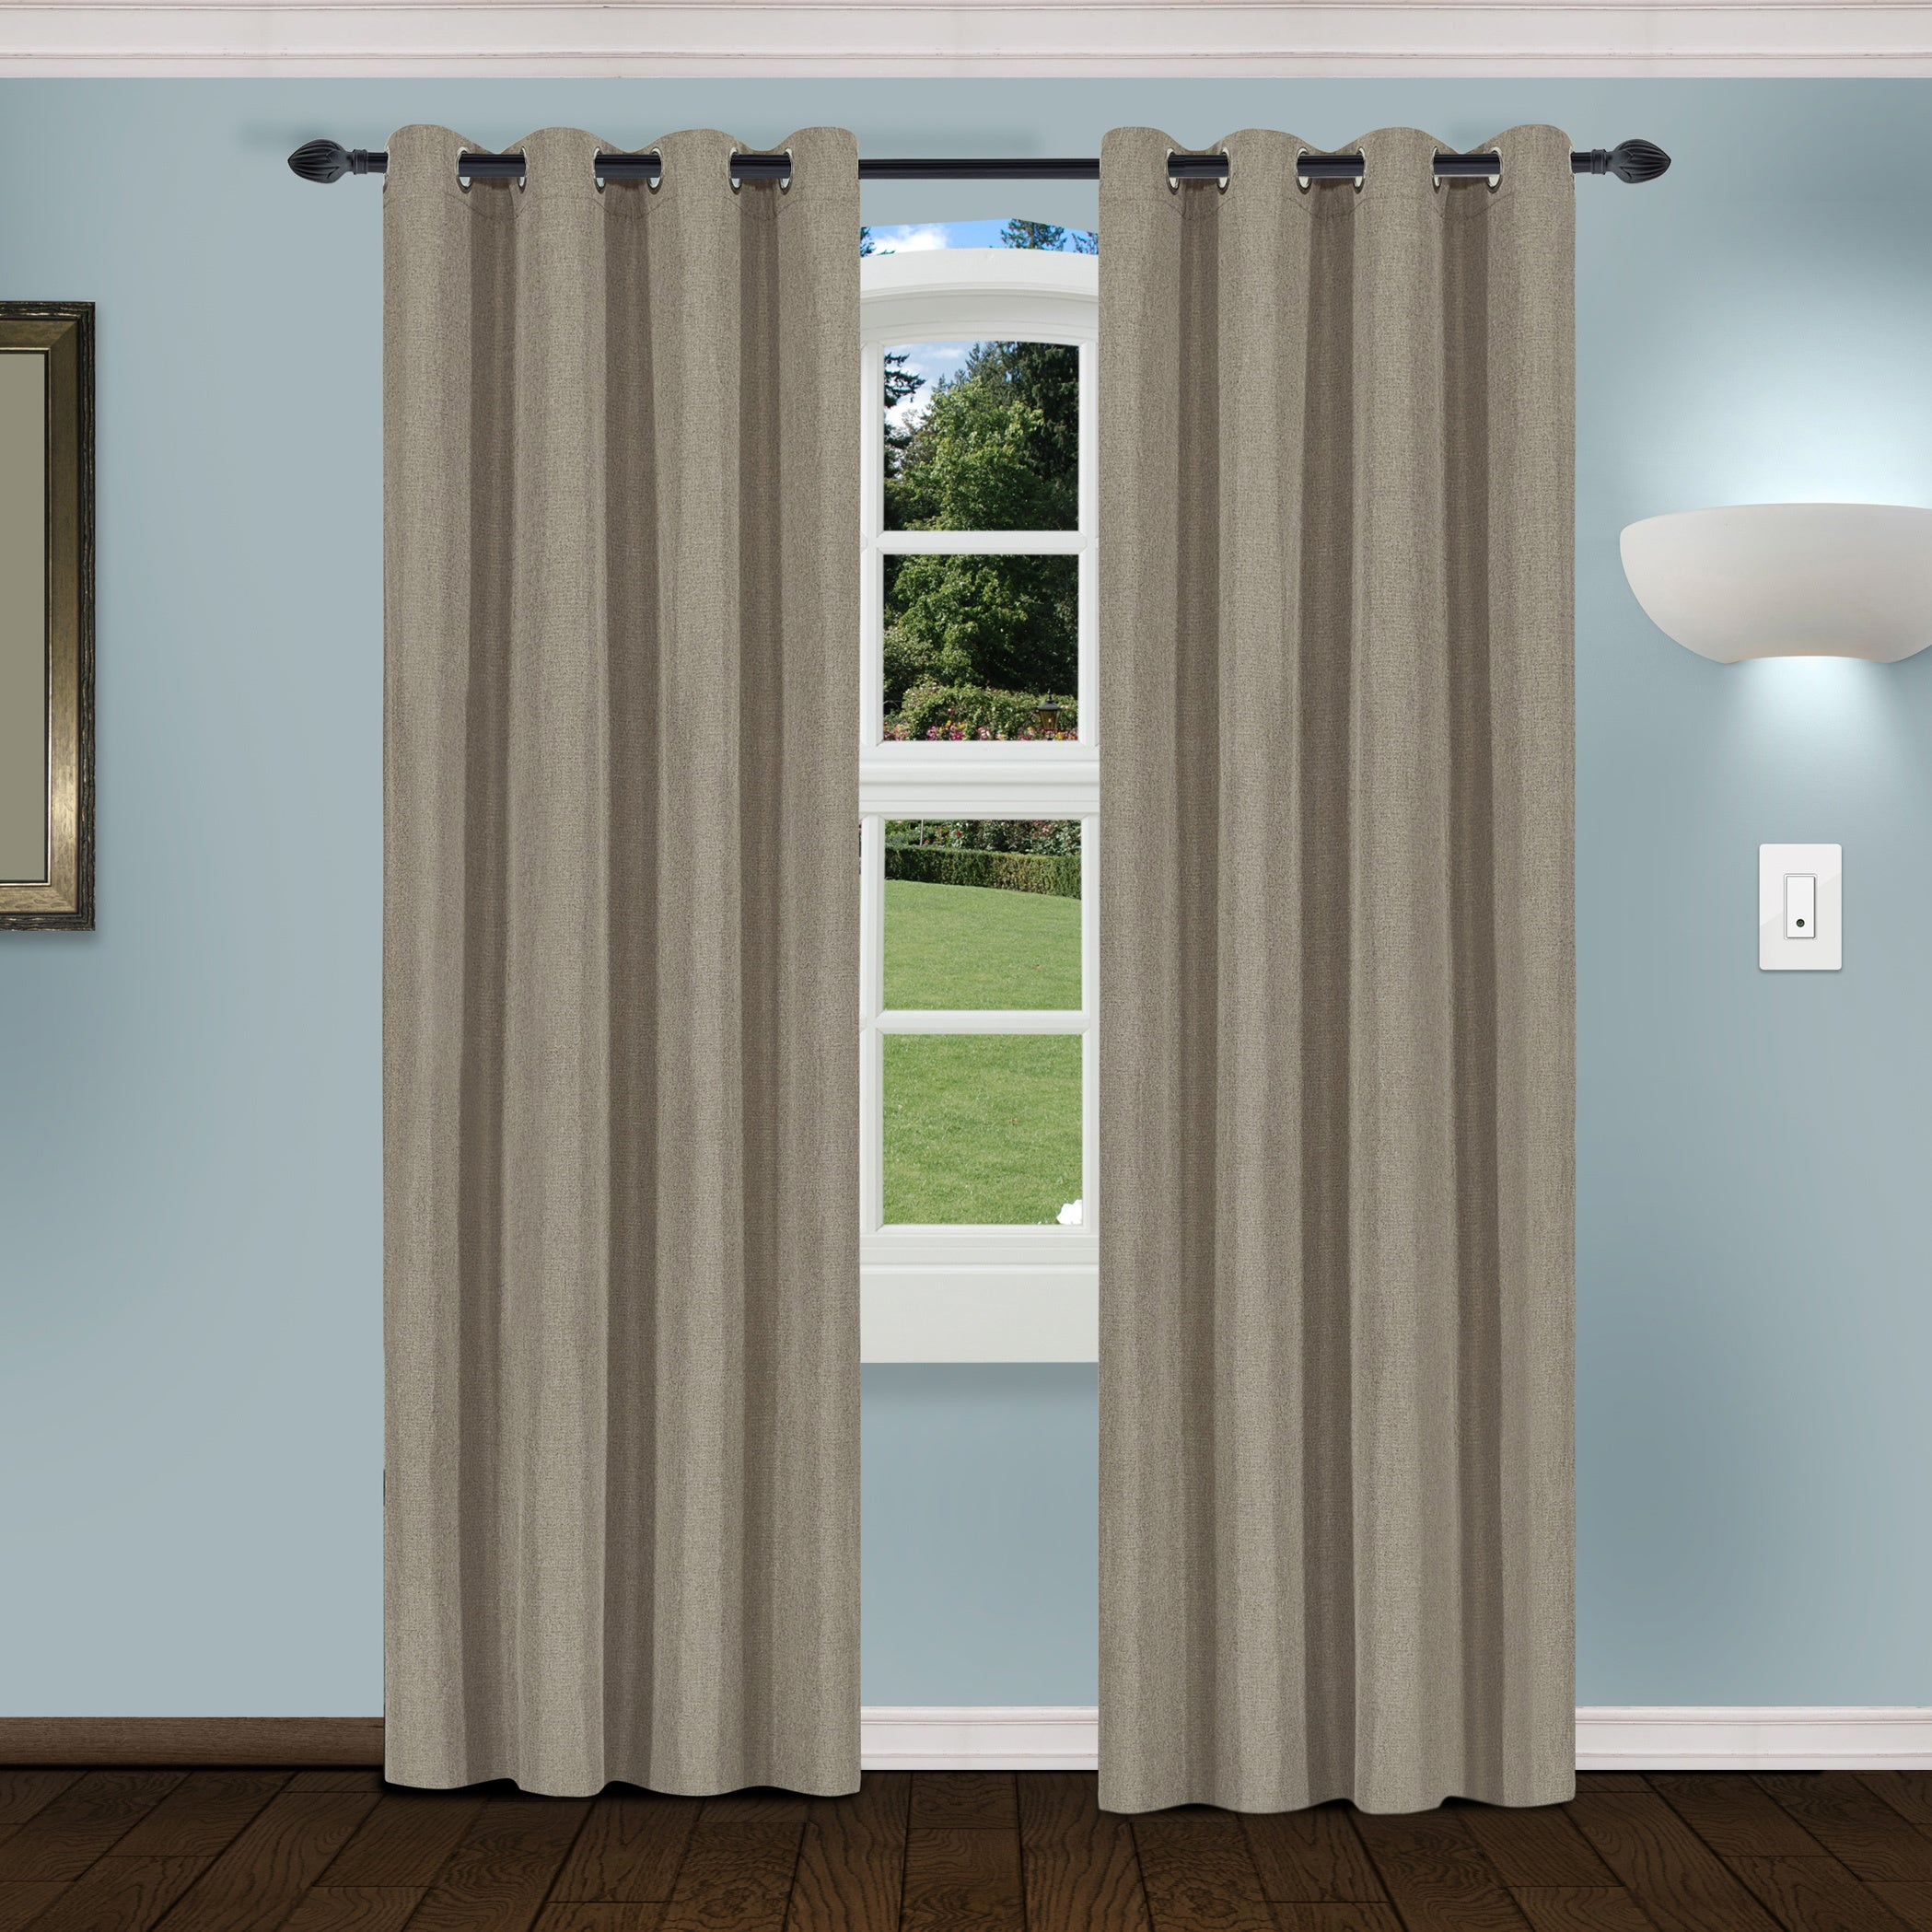 Superior Linen Insulated Thermal Blackout Grommet Curtain Panel Pair Inside Superior Solid Insulated Thermal Blackout Grommet Curtain Panel Pairs (View 6 of 30)